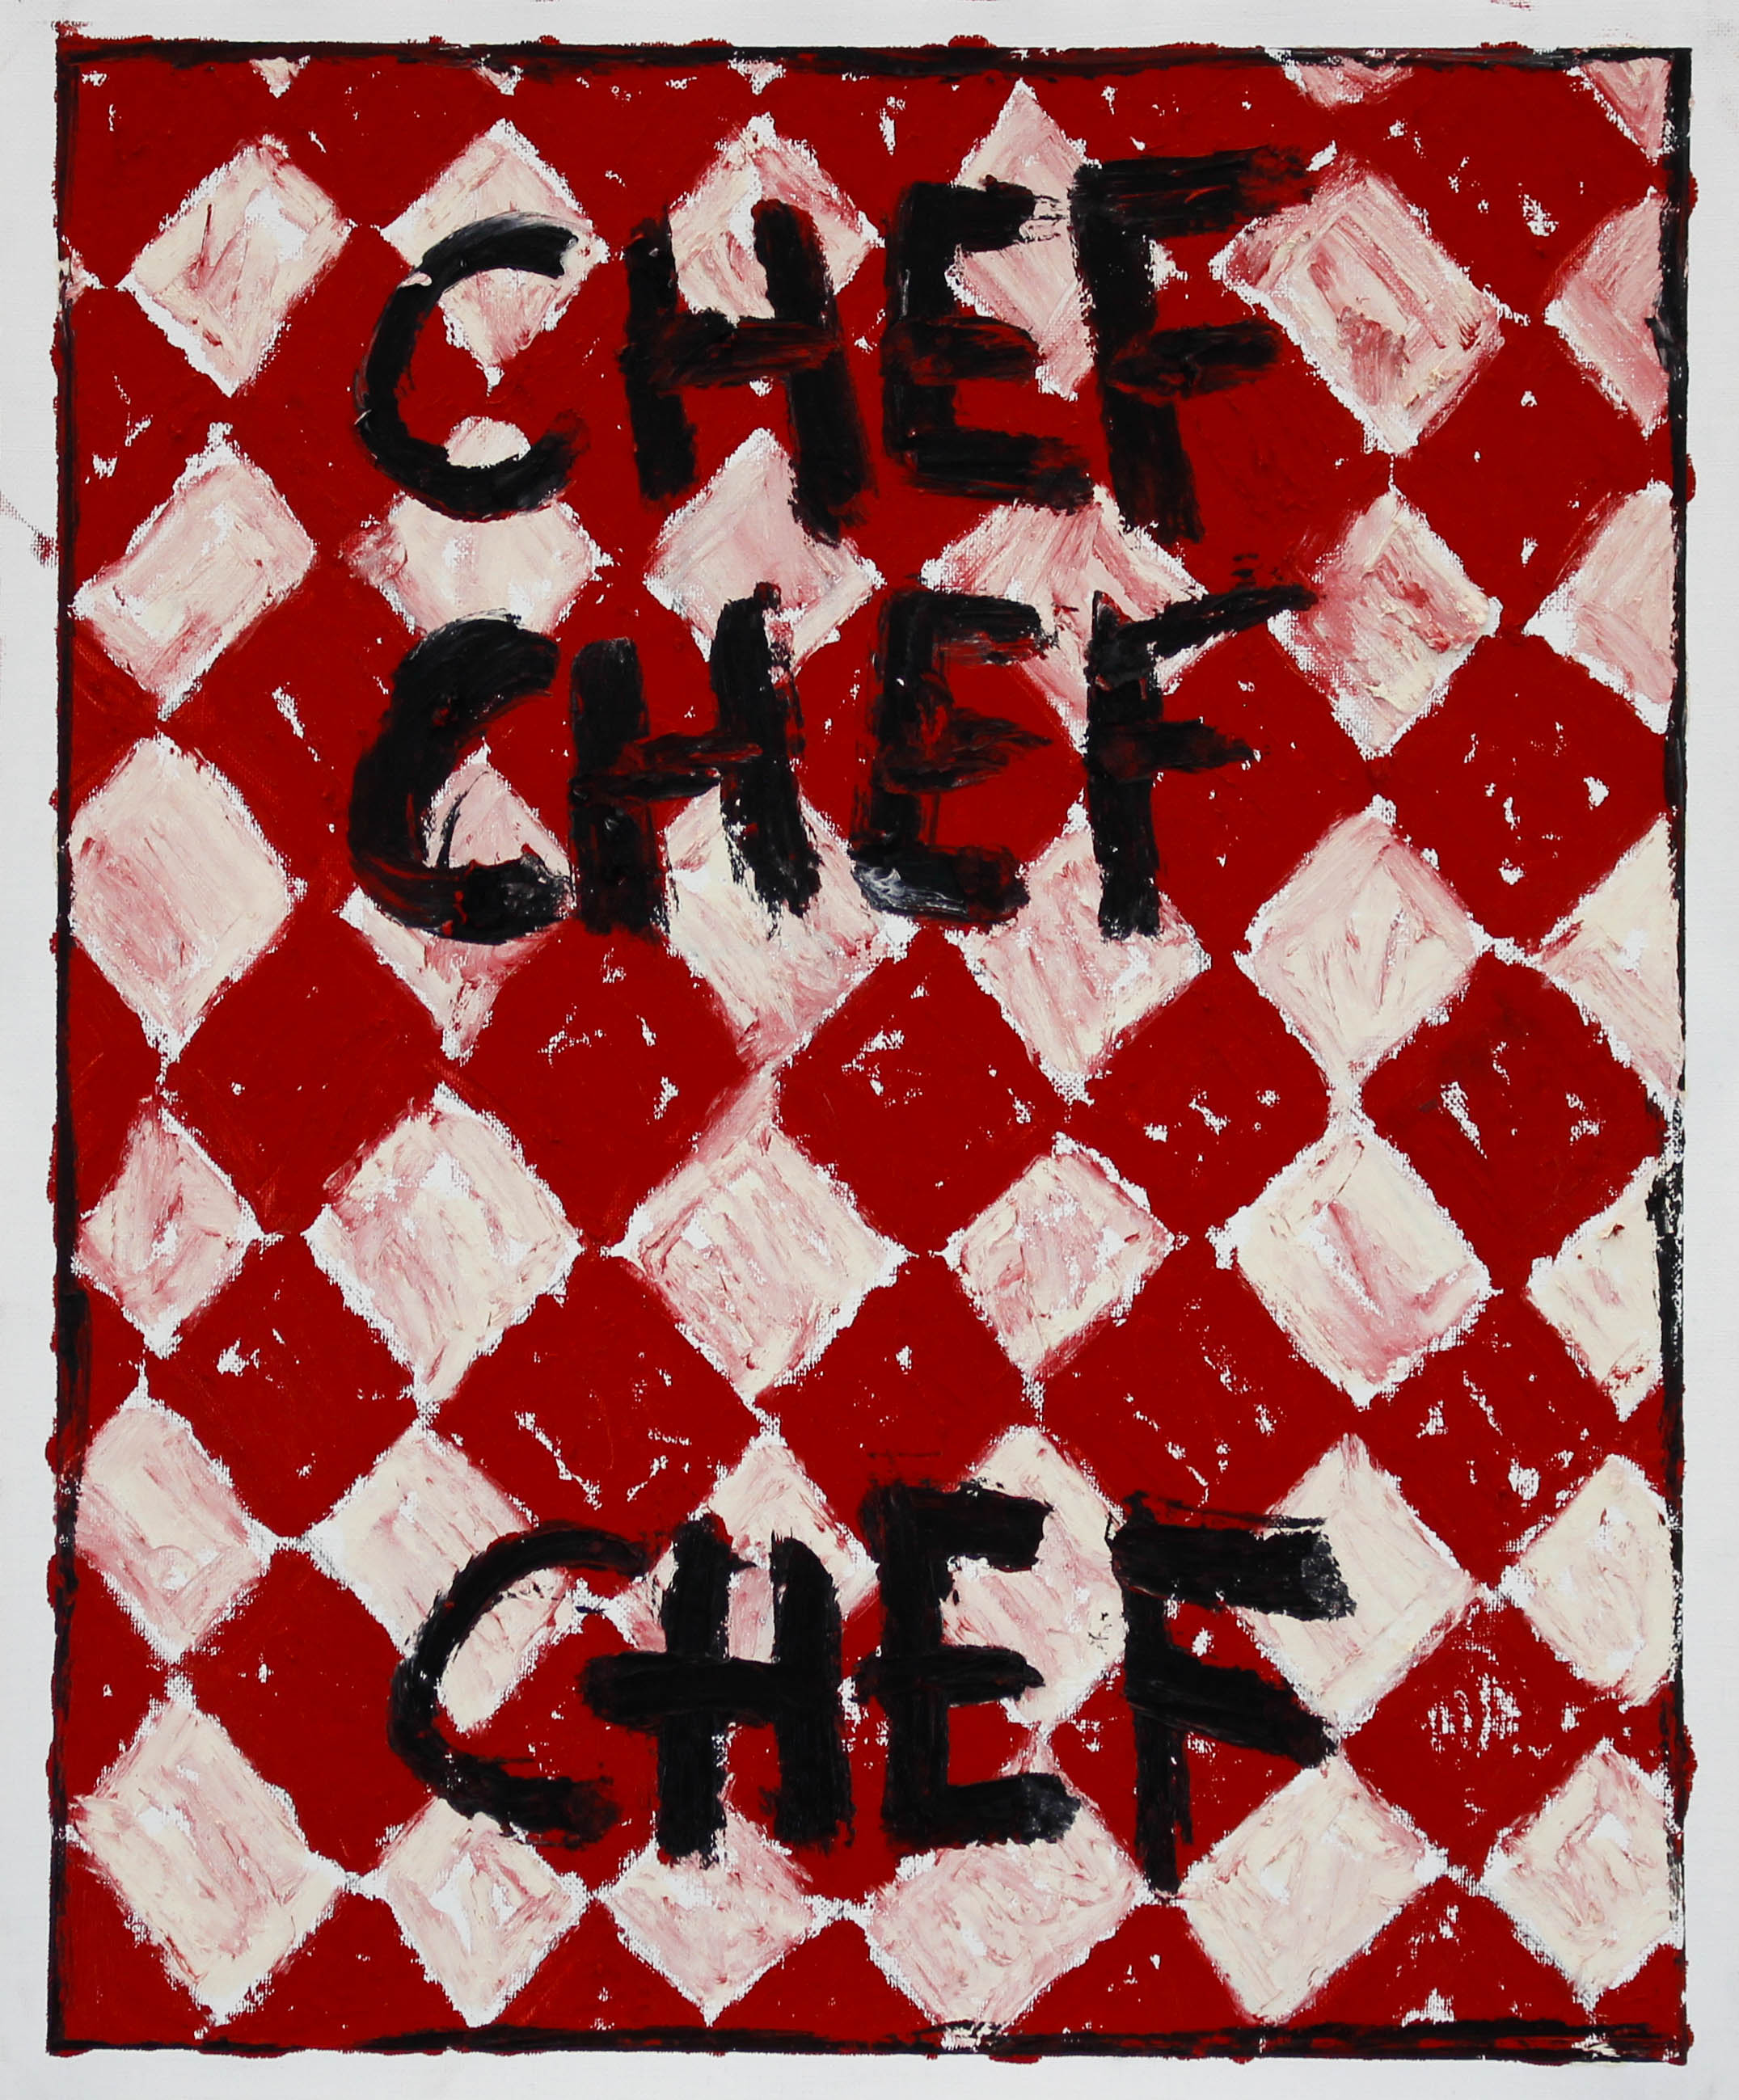 """""""CHEF X 3"""" / 2019 OILSTICK ON UNSTRETCHED CANVAS FRAMED IN WHITE WITH ARTGLASS AR70 42 X 51 CM SOLD"""